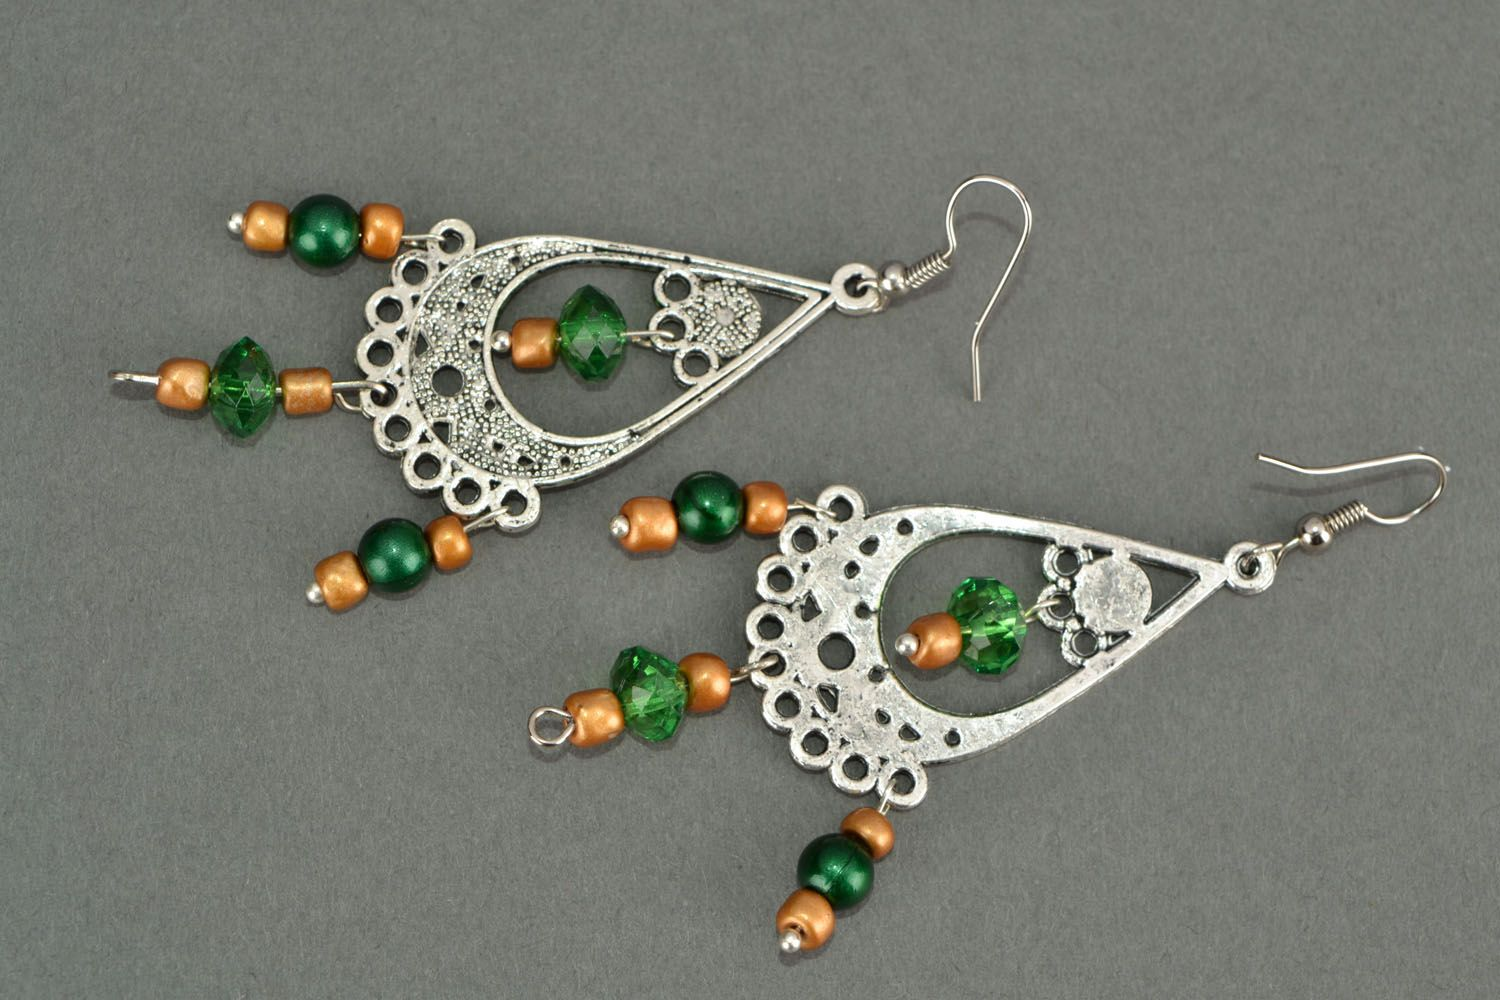 Long earrings in Eastern style photo 5